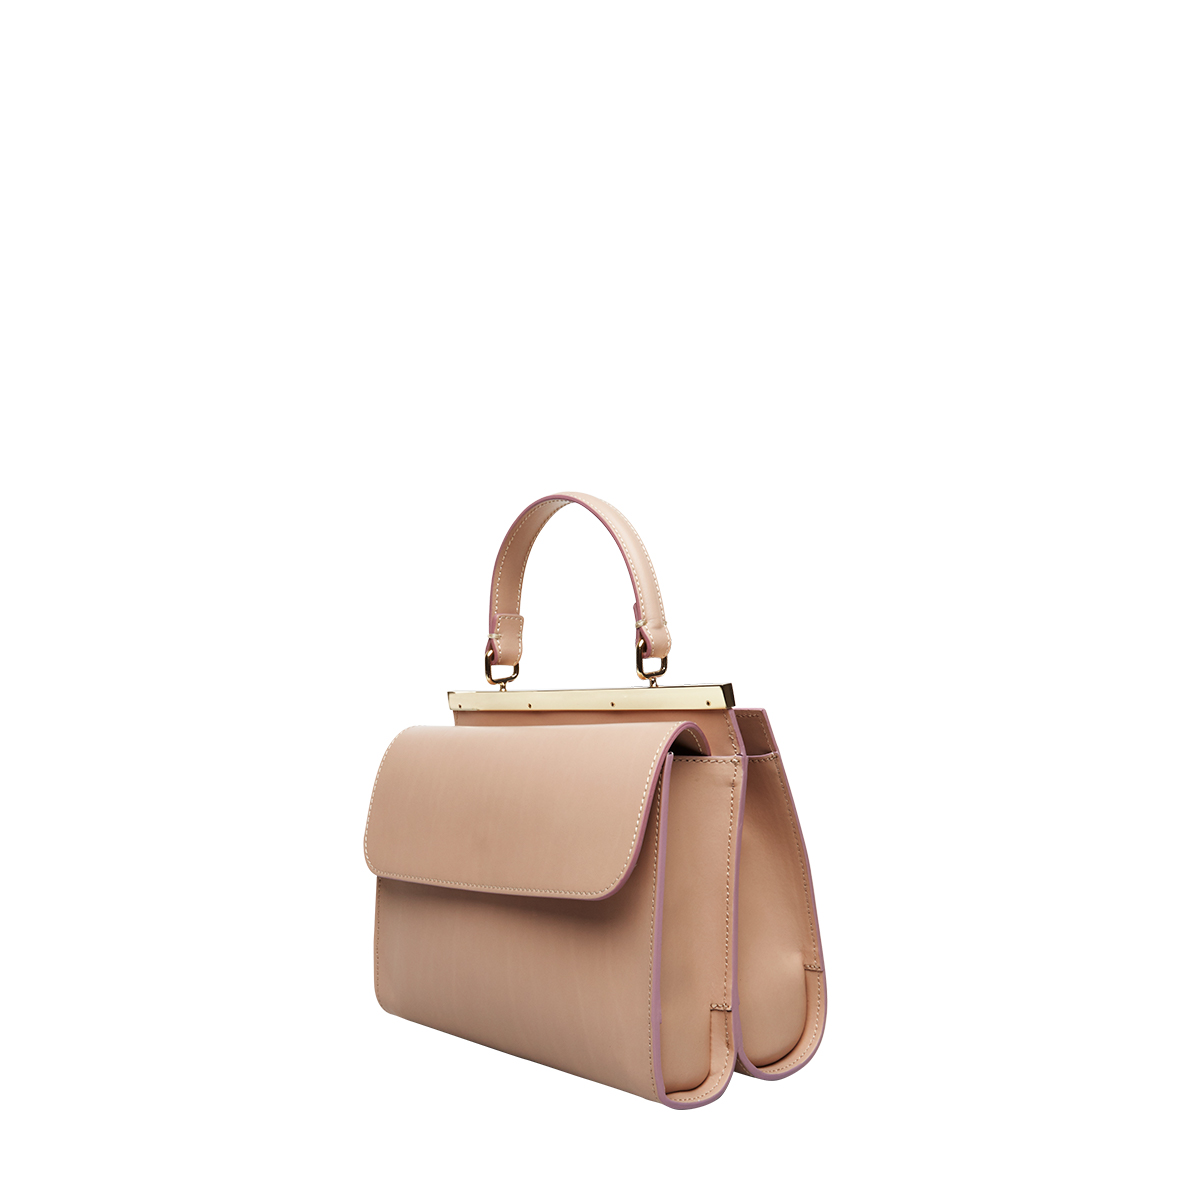 Wavy Bag Shoulder, Nude